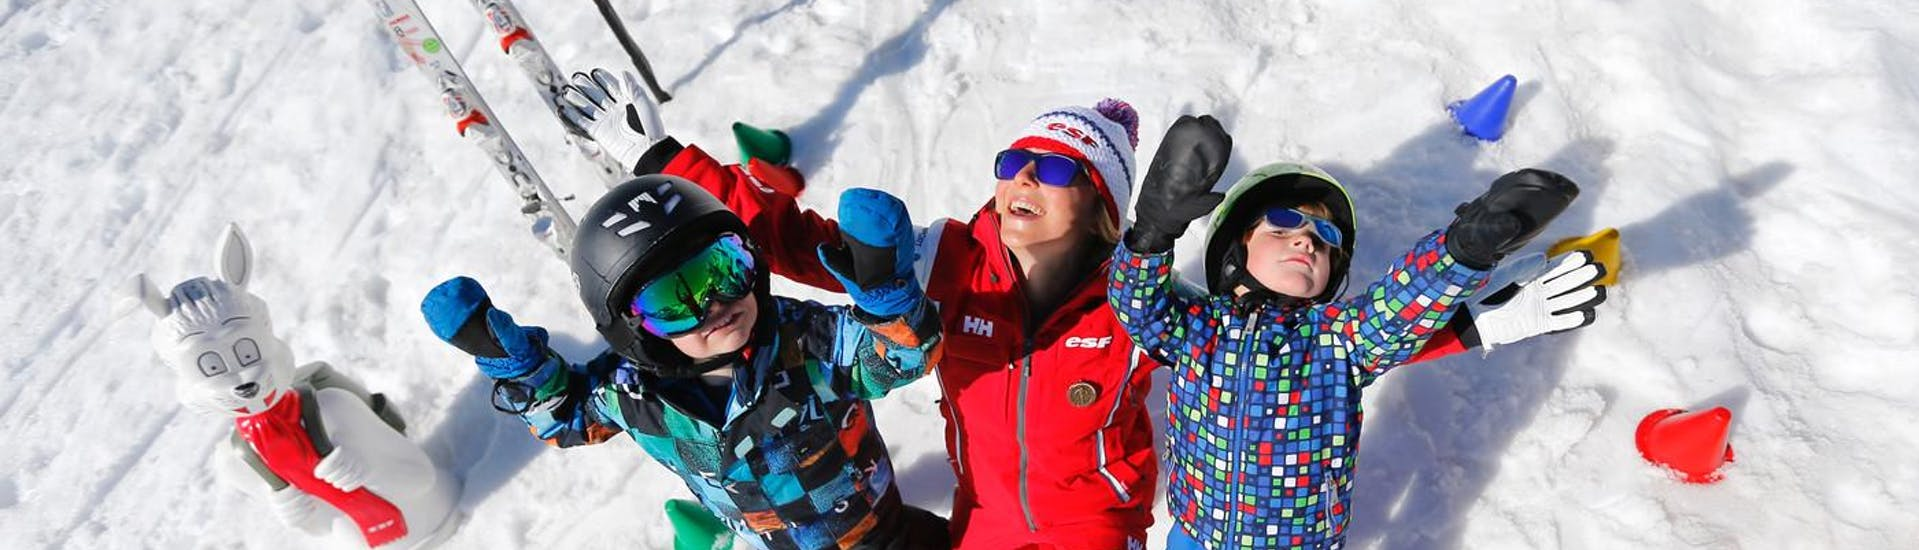 """Children are standing in the snow with their arms in the air alongside their ski instructor from the ski school ESF Alpe d'Huez during their Kids Ski Lessons """"Club Piou-Piou"""" (from 5 years) - February."""